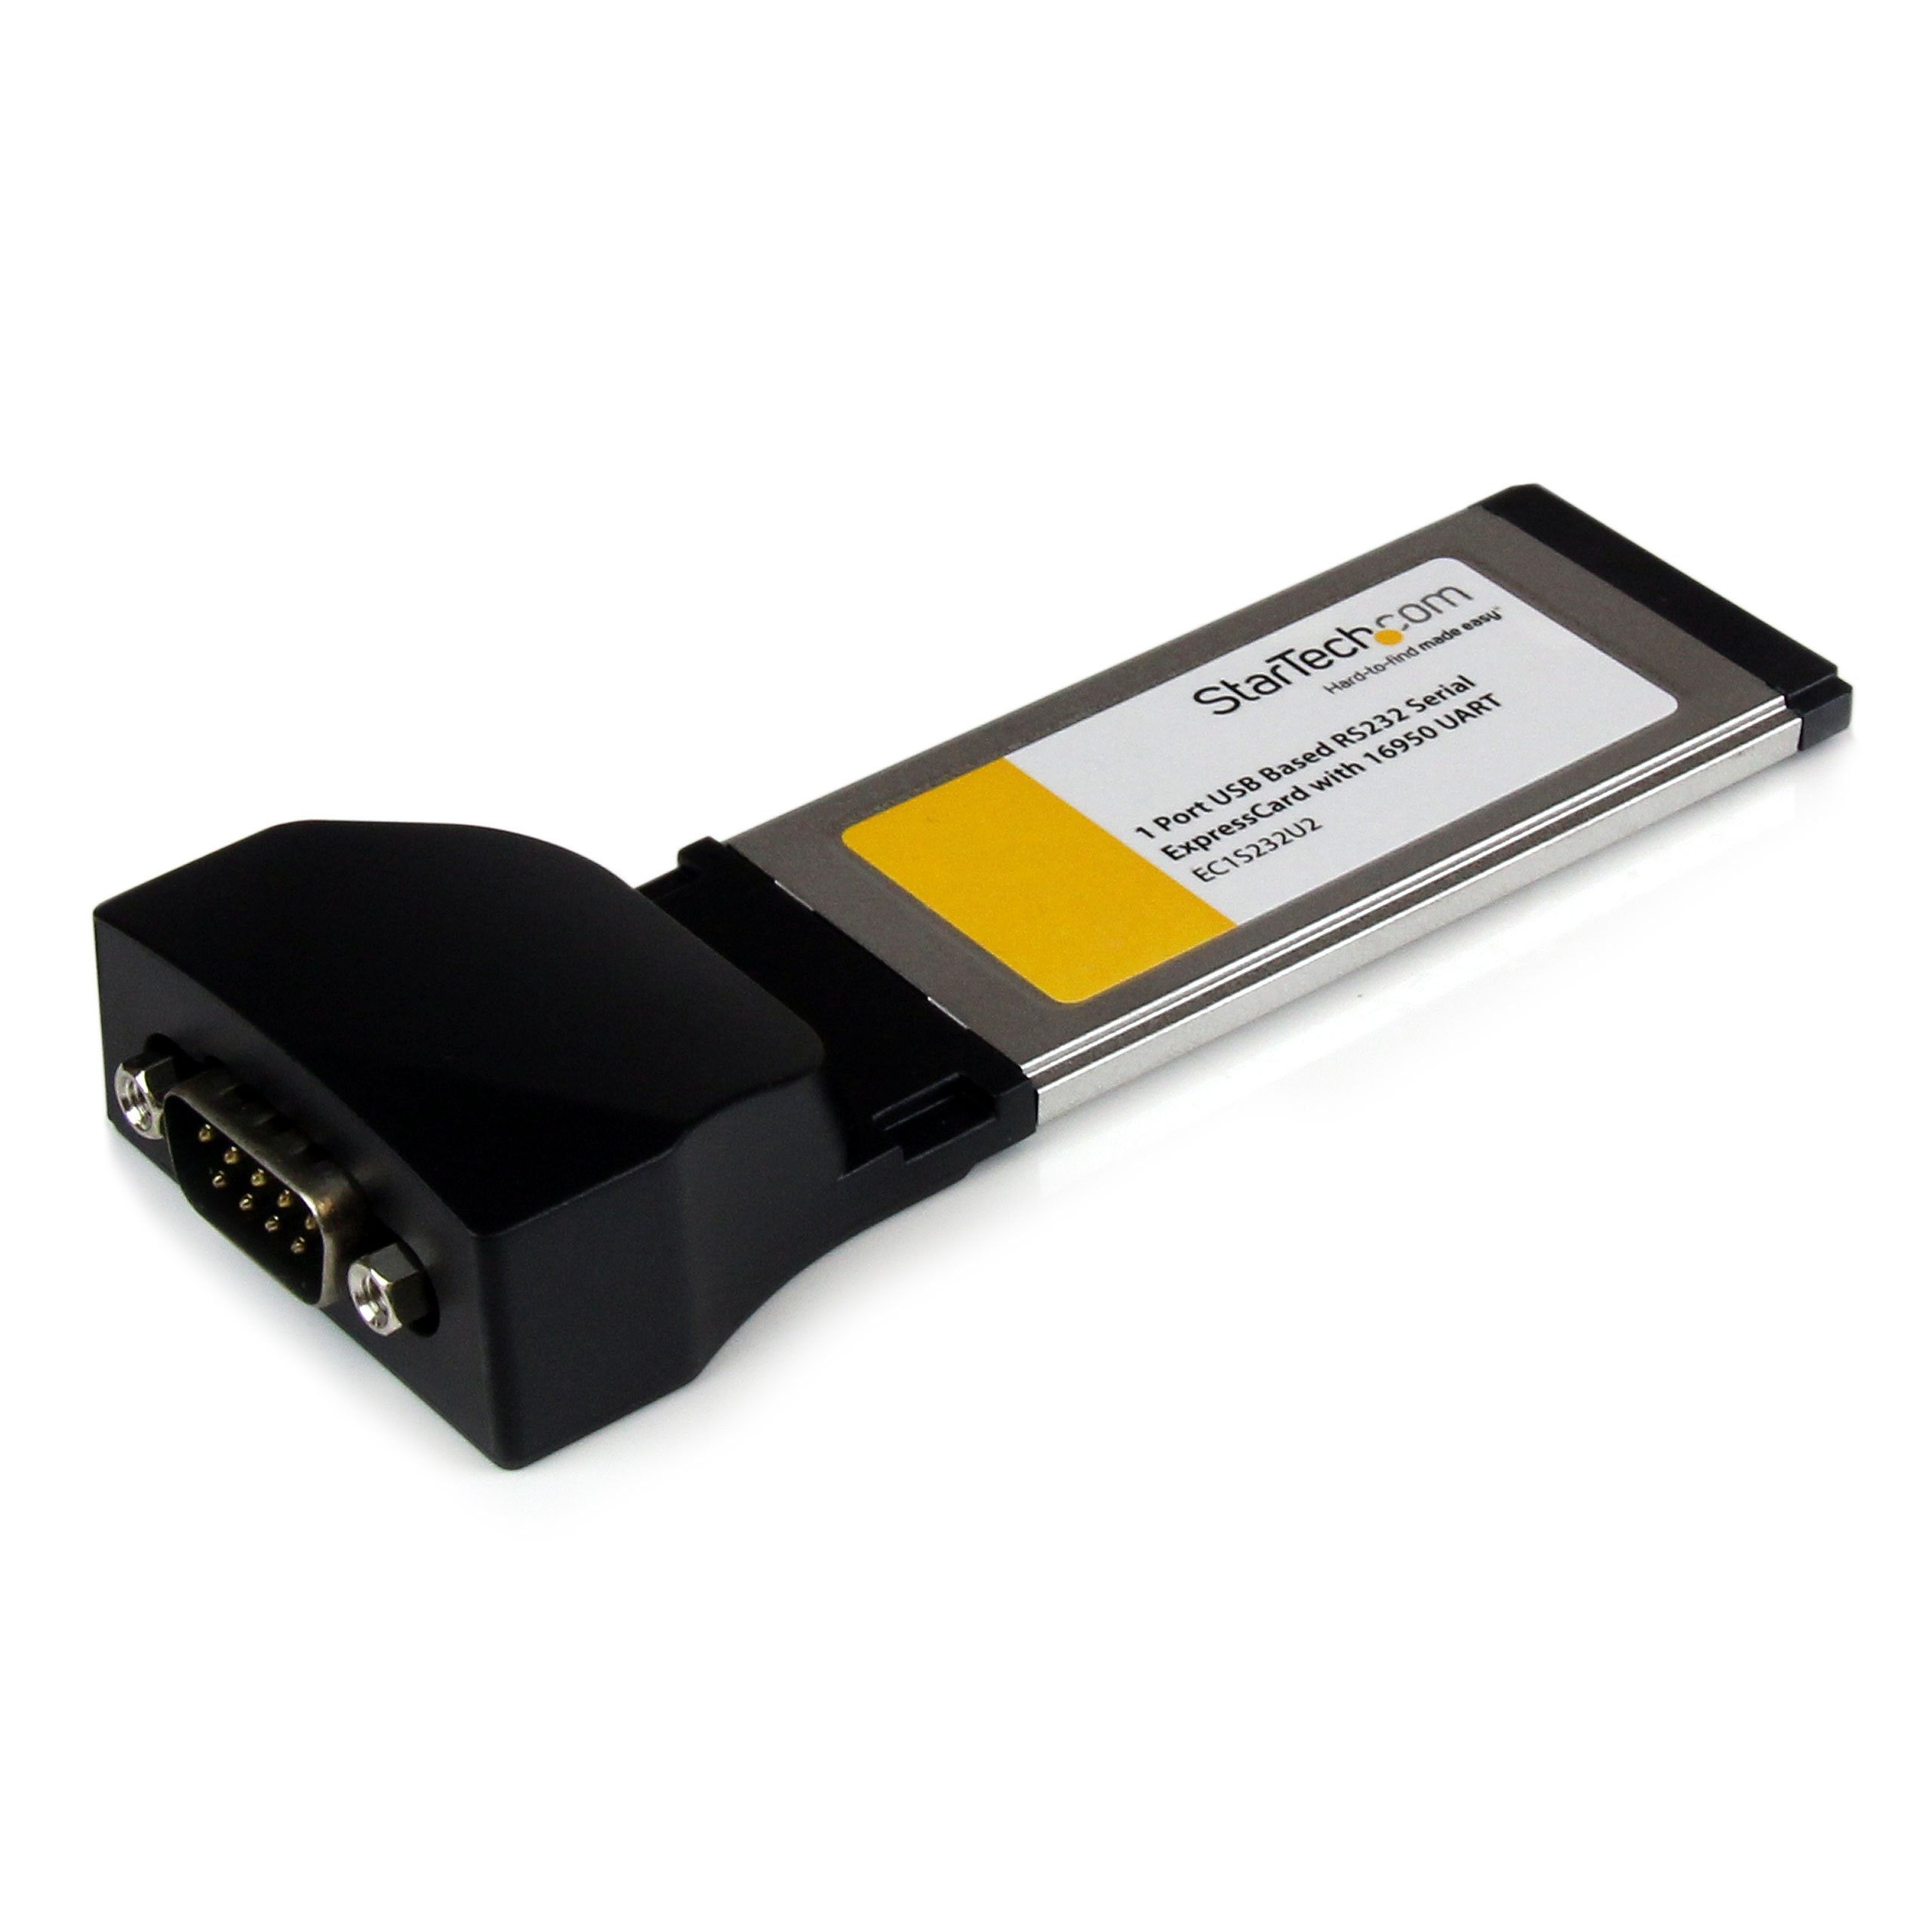 StarTech 1 Port ExpressCard to RS232 DB9 Serial Adapter Card w/ 16950 - USB Based